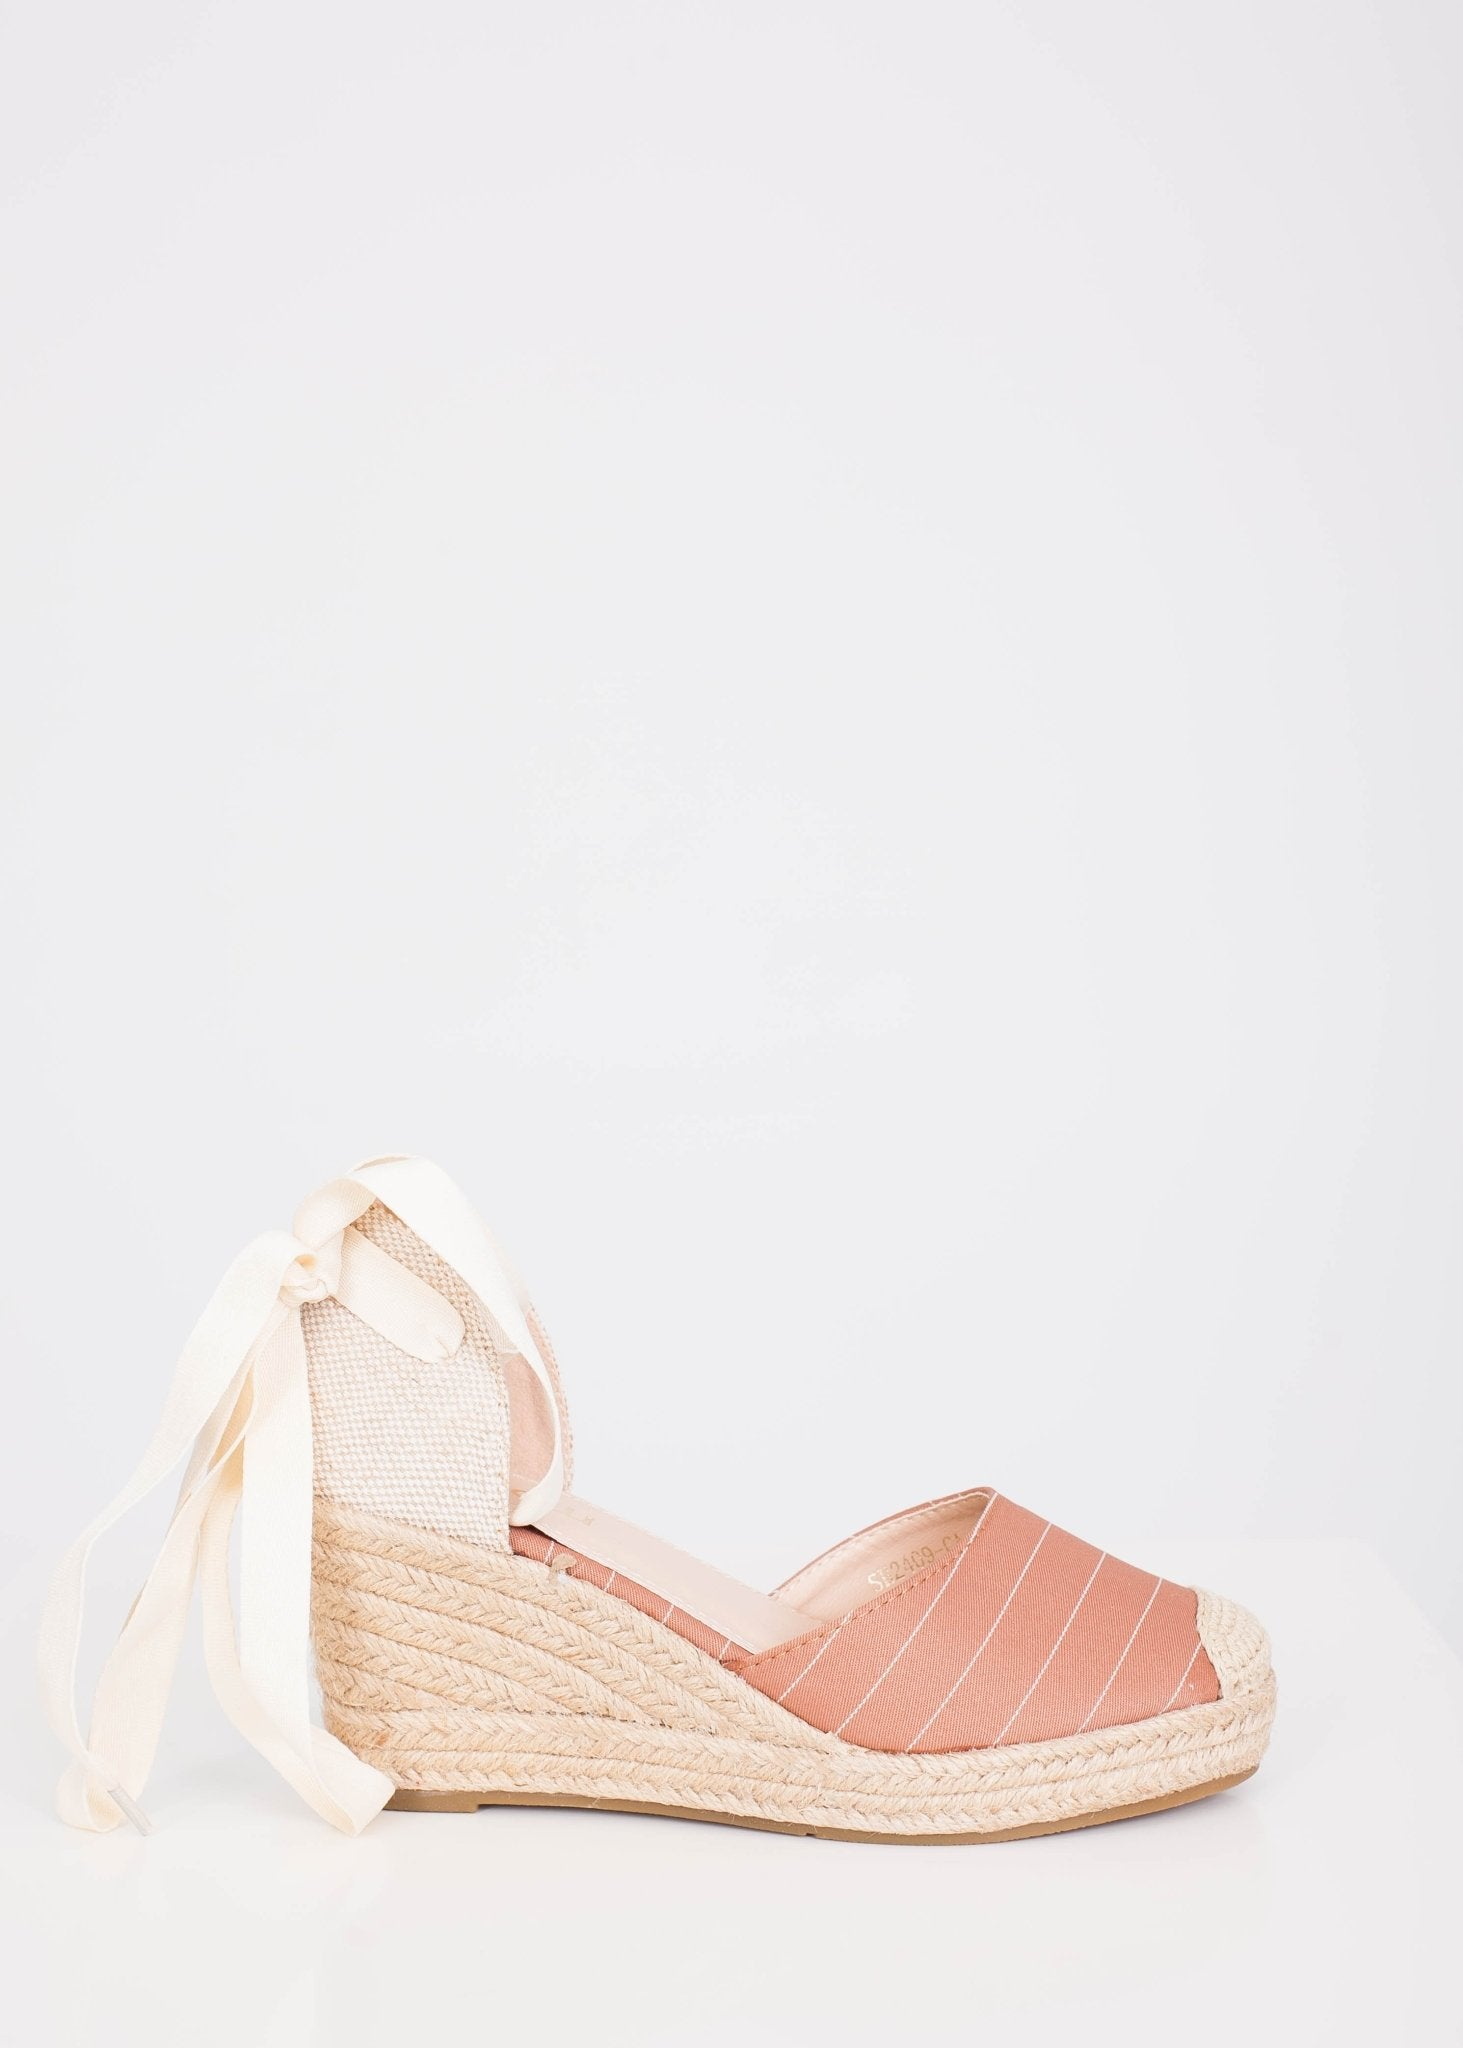 Alice Tan Wedges - The Walk in Wardrobe